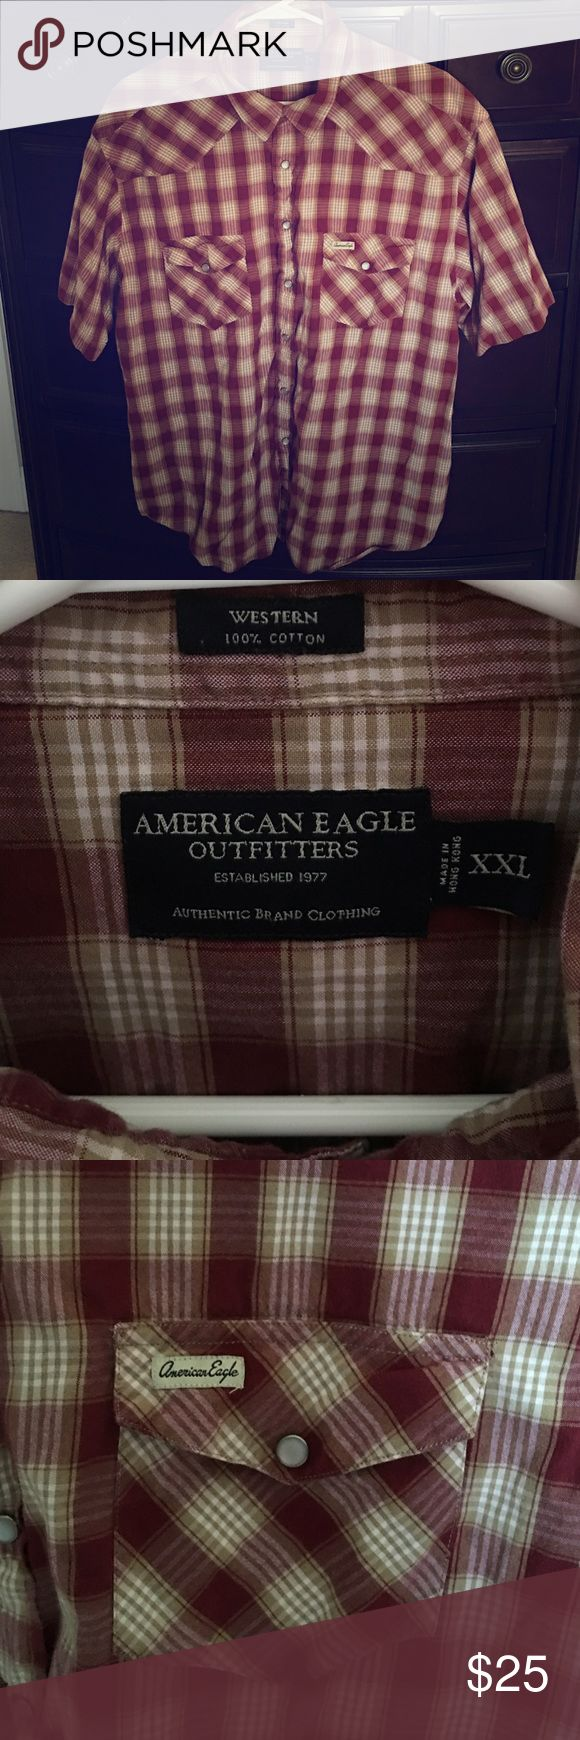 Men's American Eagle Outfitters plaid t-shirt The men's plaid American Eagles Outfitters t-shirt is an XXL. The plaid shirt buttons up the front. Two front pockets located on the chest. American Eagle Outfitters Shirts Tees - Short Sleeve